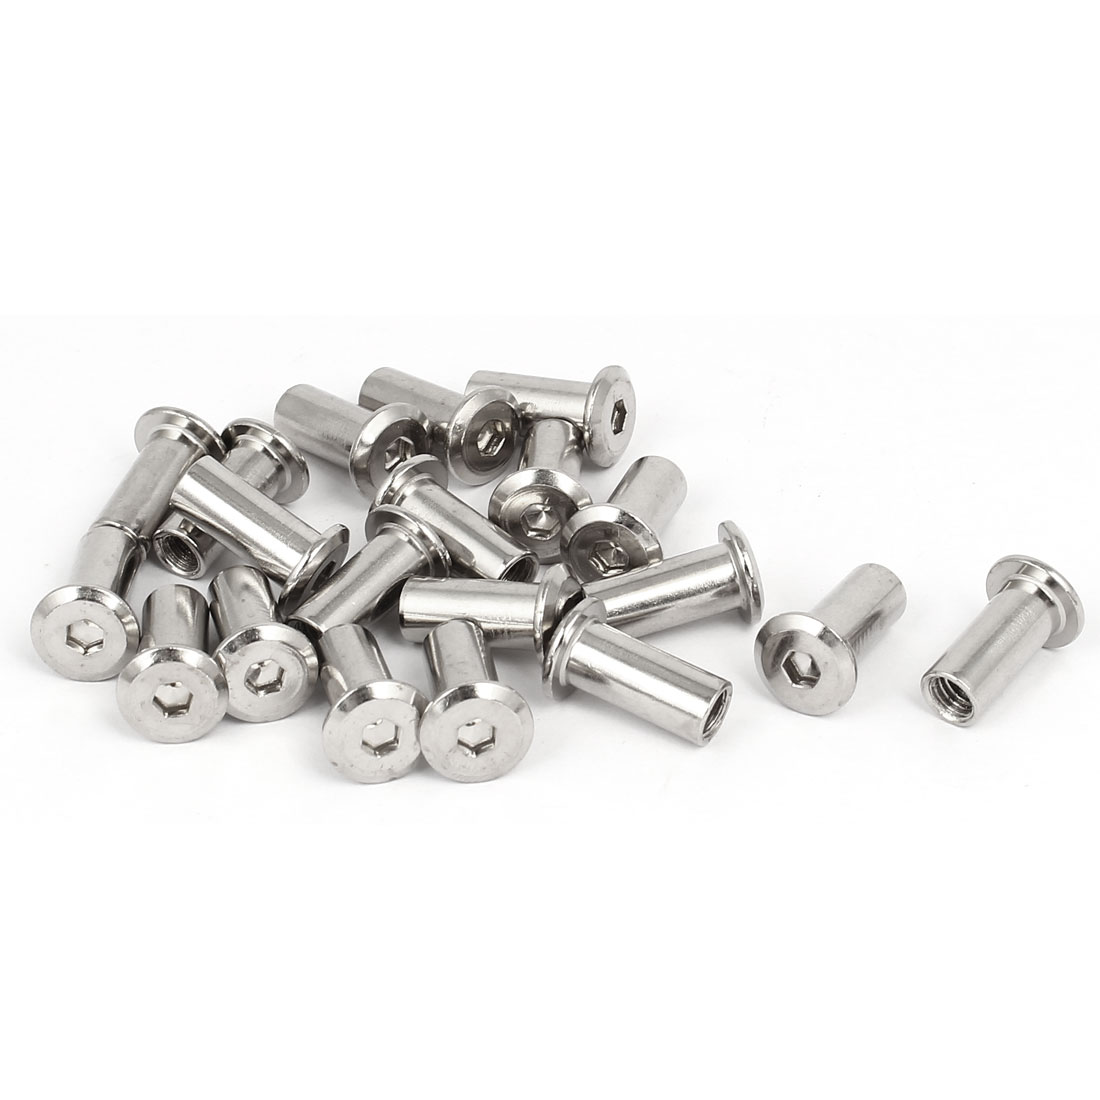 M6x18mm Metal Hexagon Hex Socket Head Barrel Nuts Furniture Fittings 20pcs